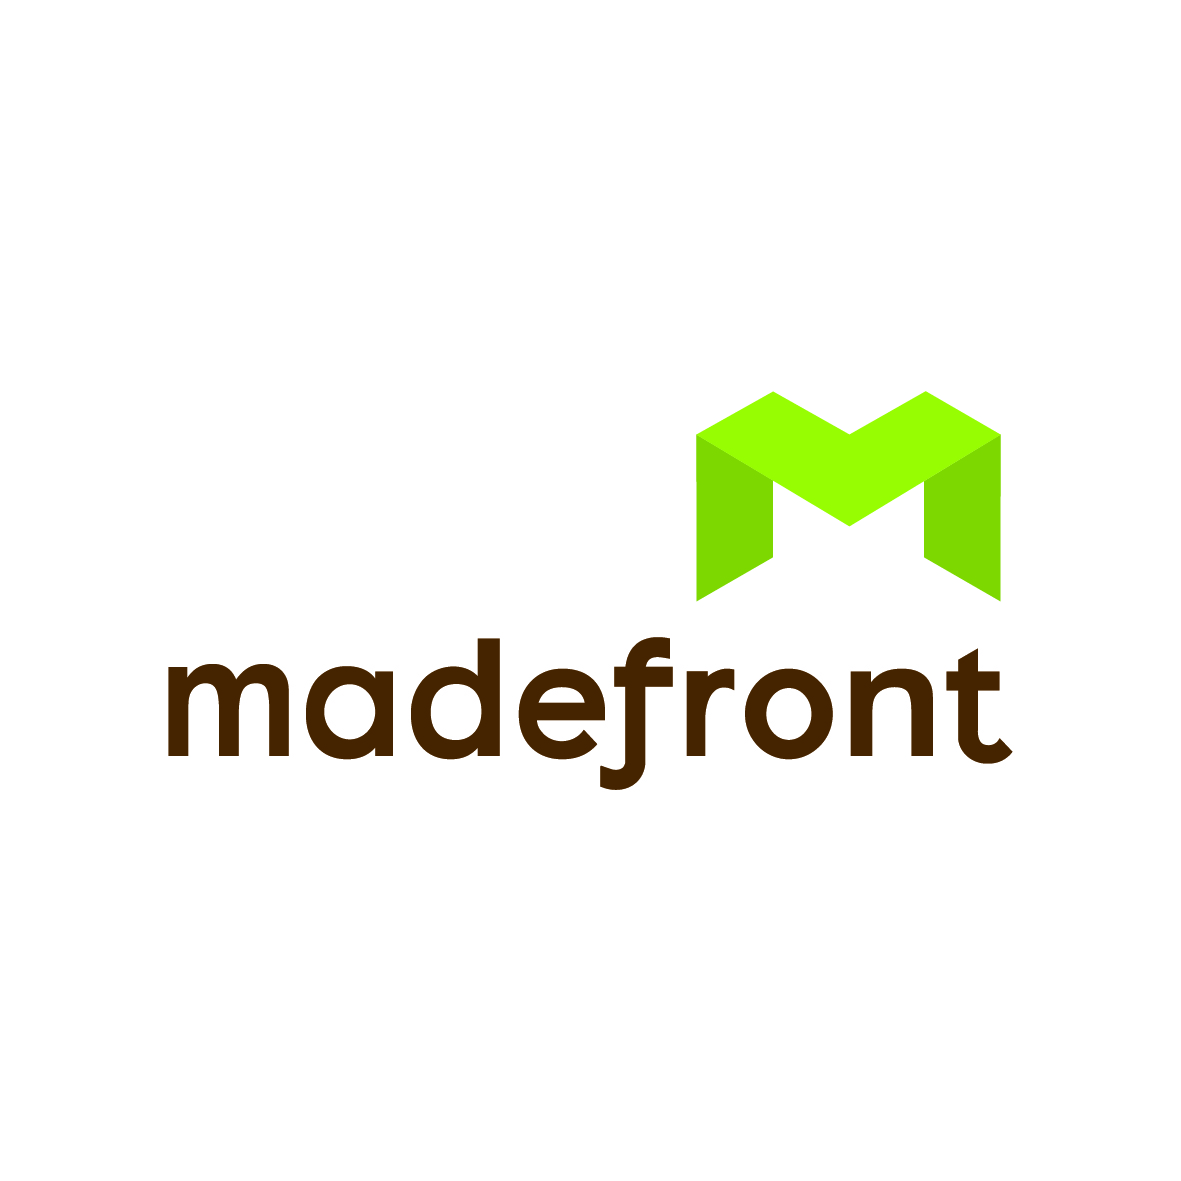 Madefront Colombia S.A.S